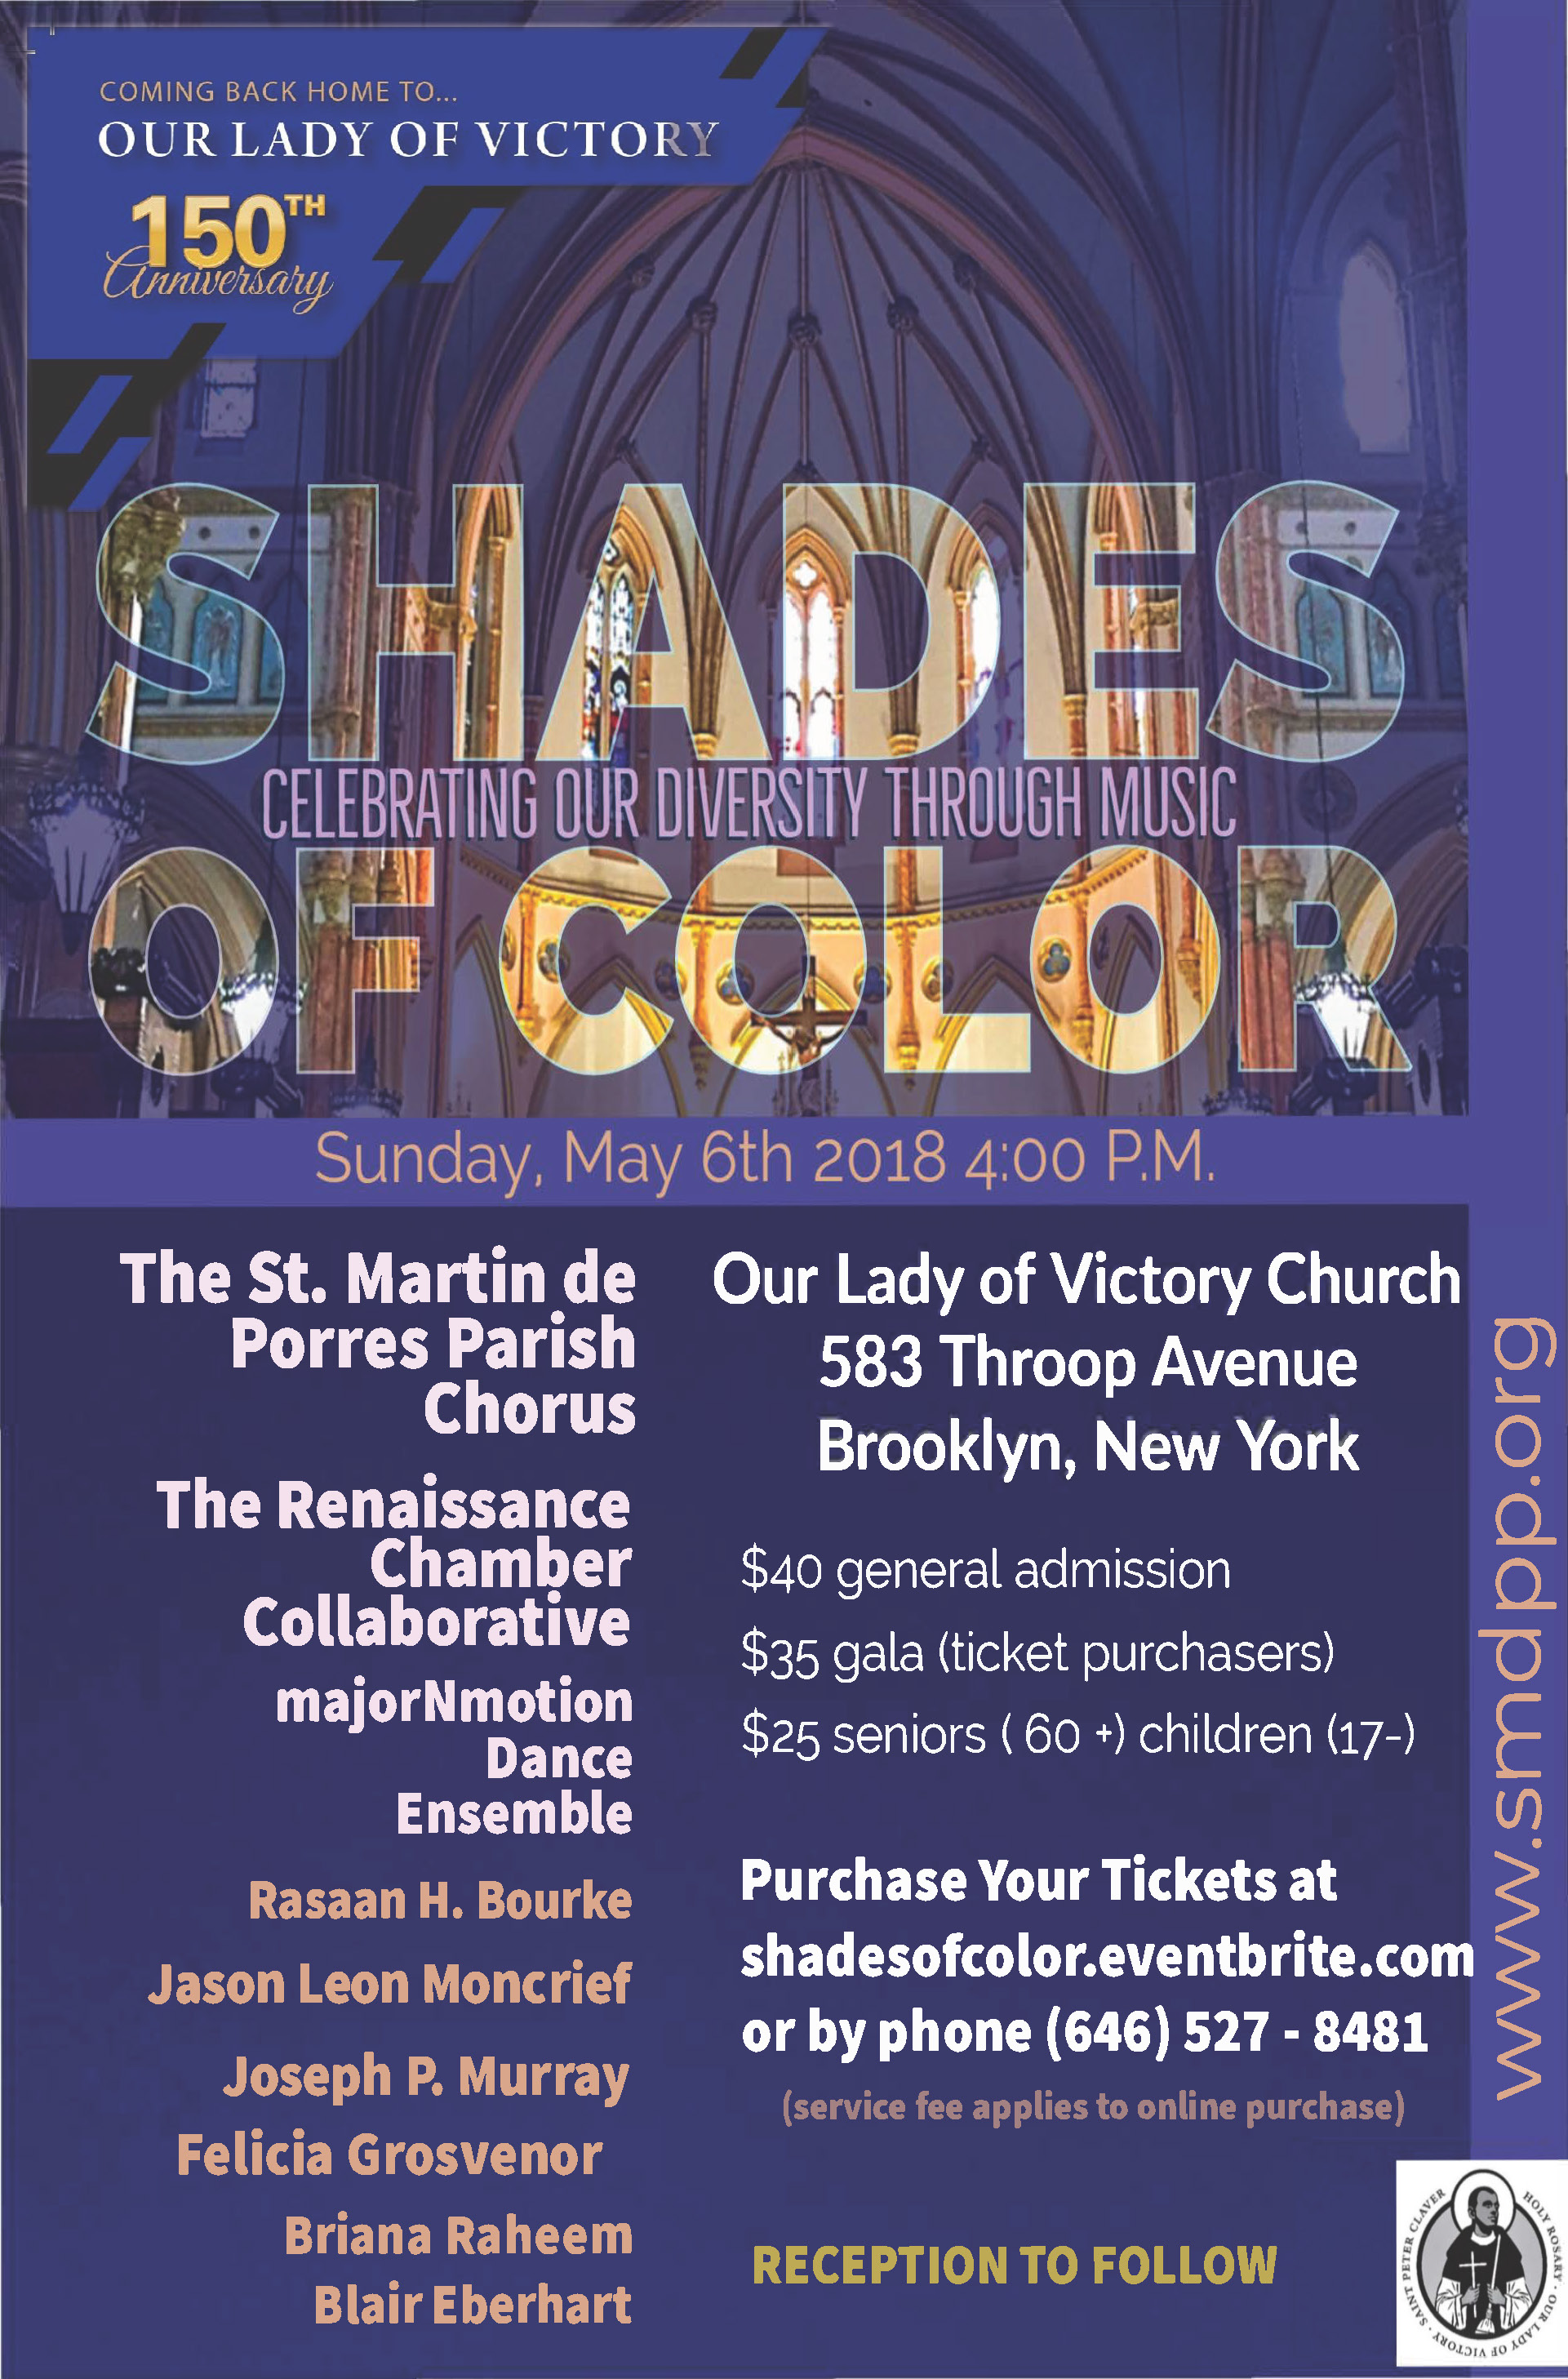 <click> the poster to view Playbill.